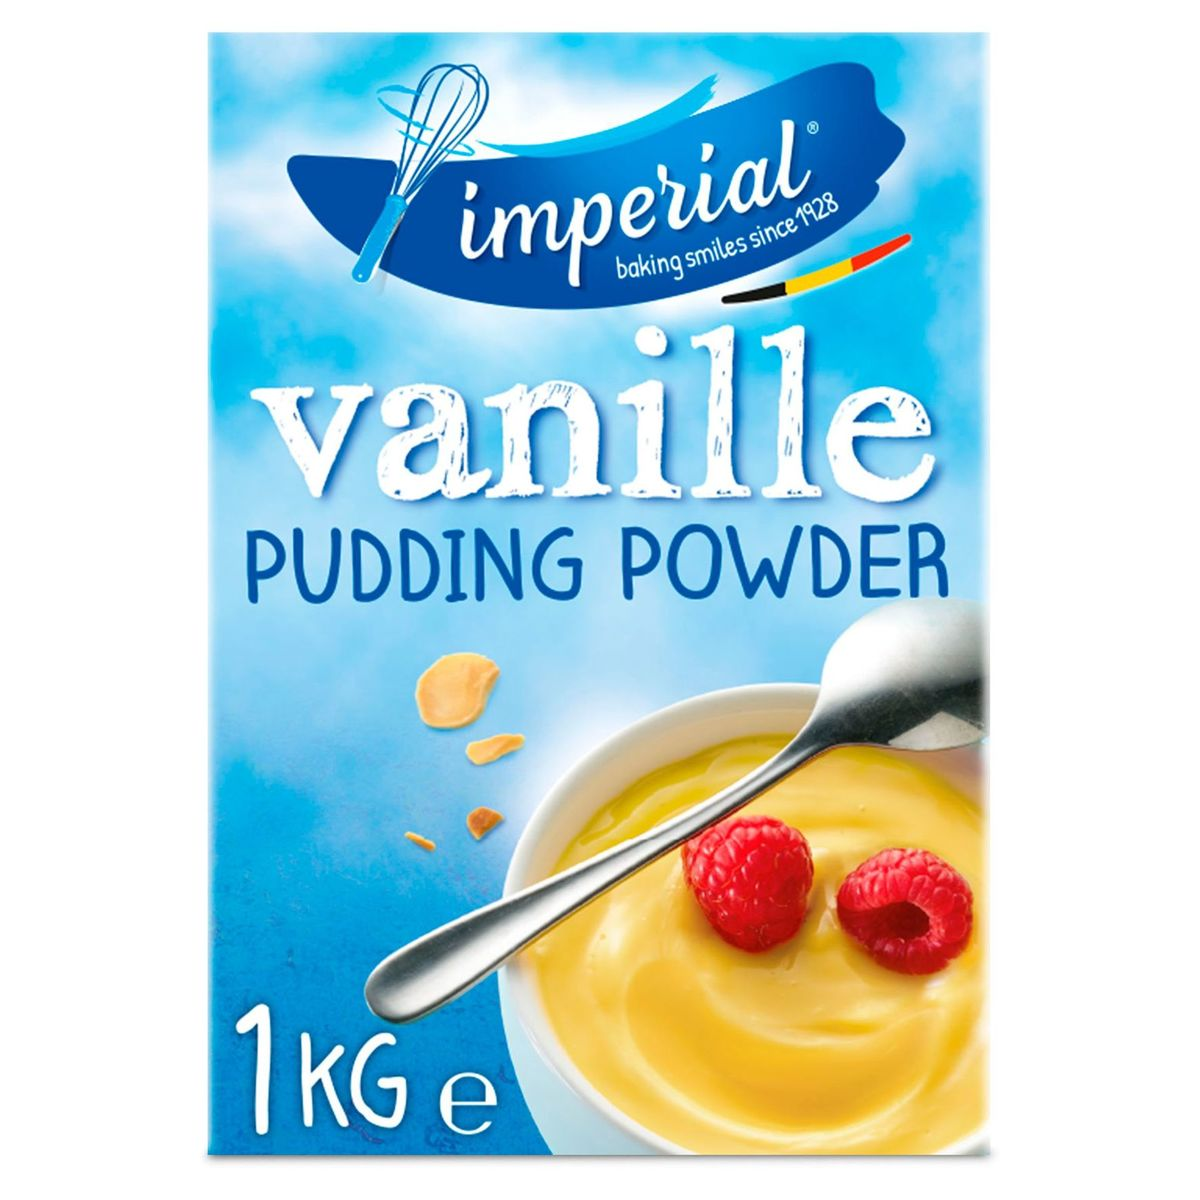 Imperial Pudding Powder Vanille Smaak 1 kg